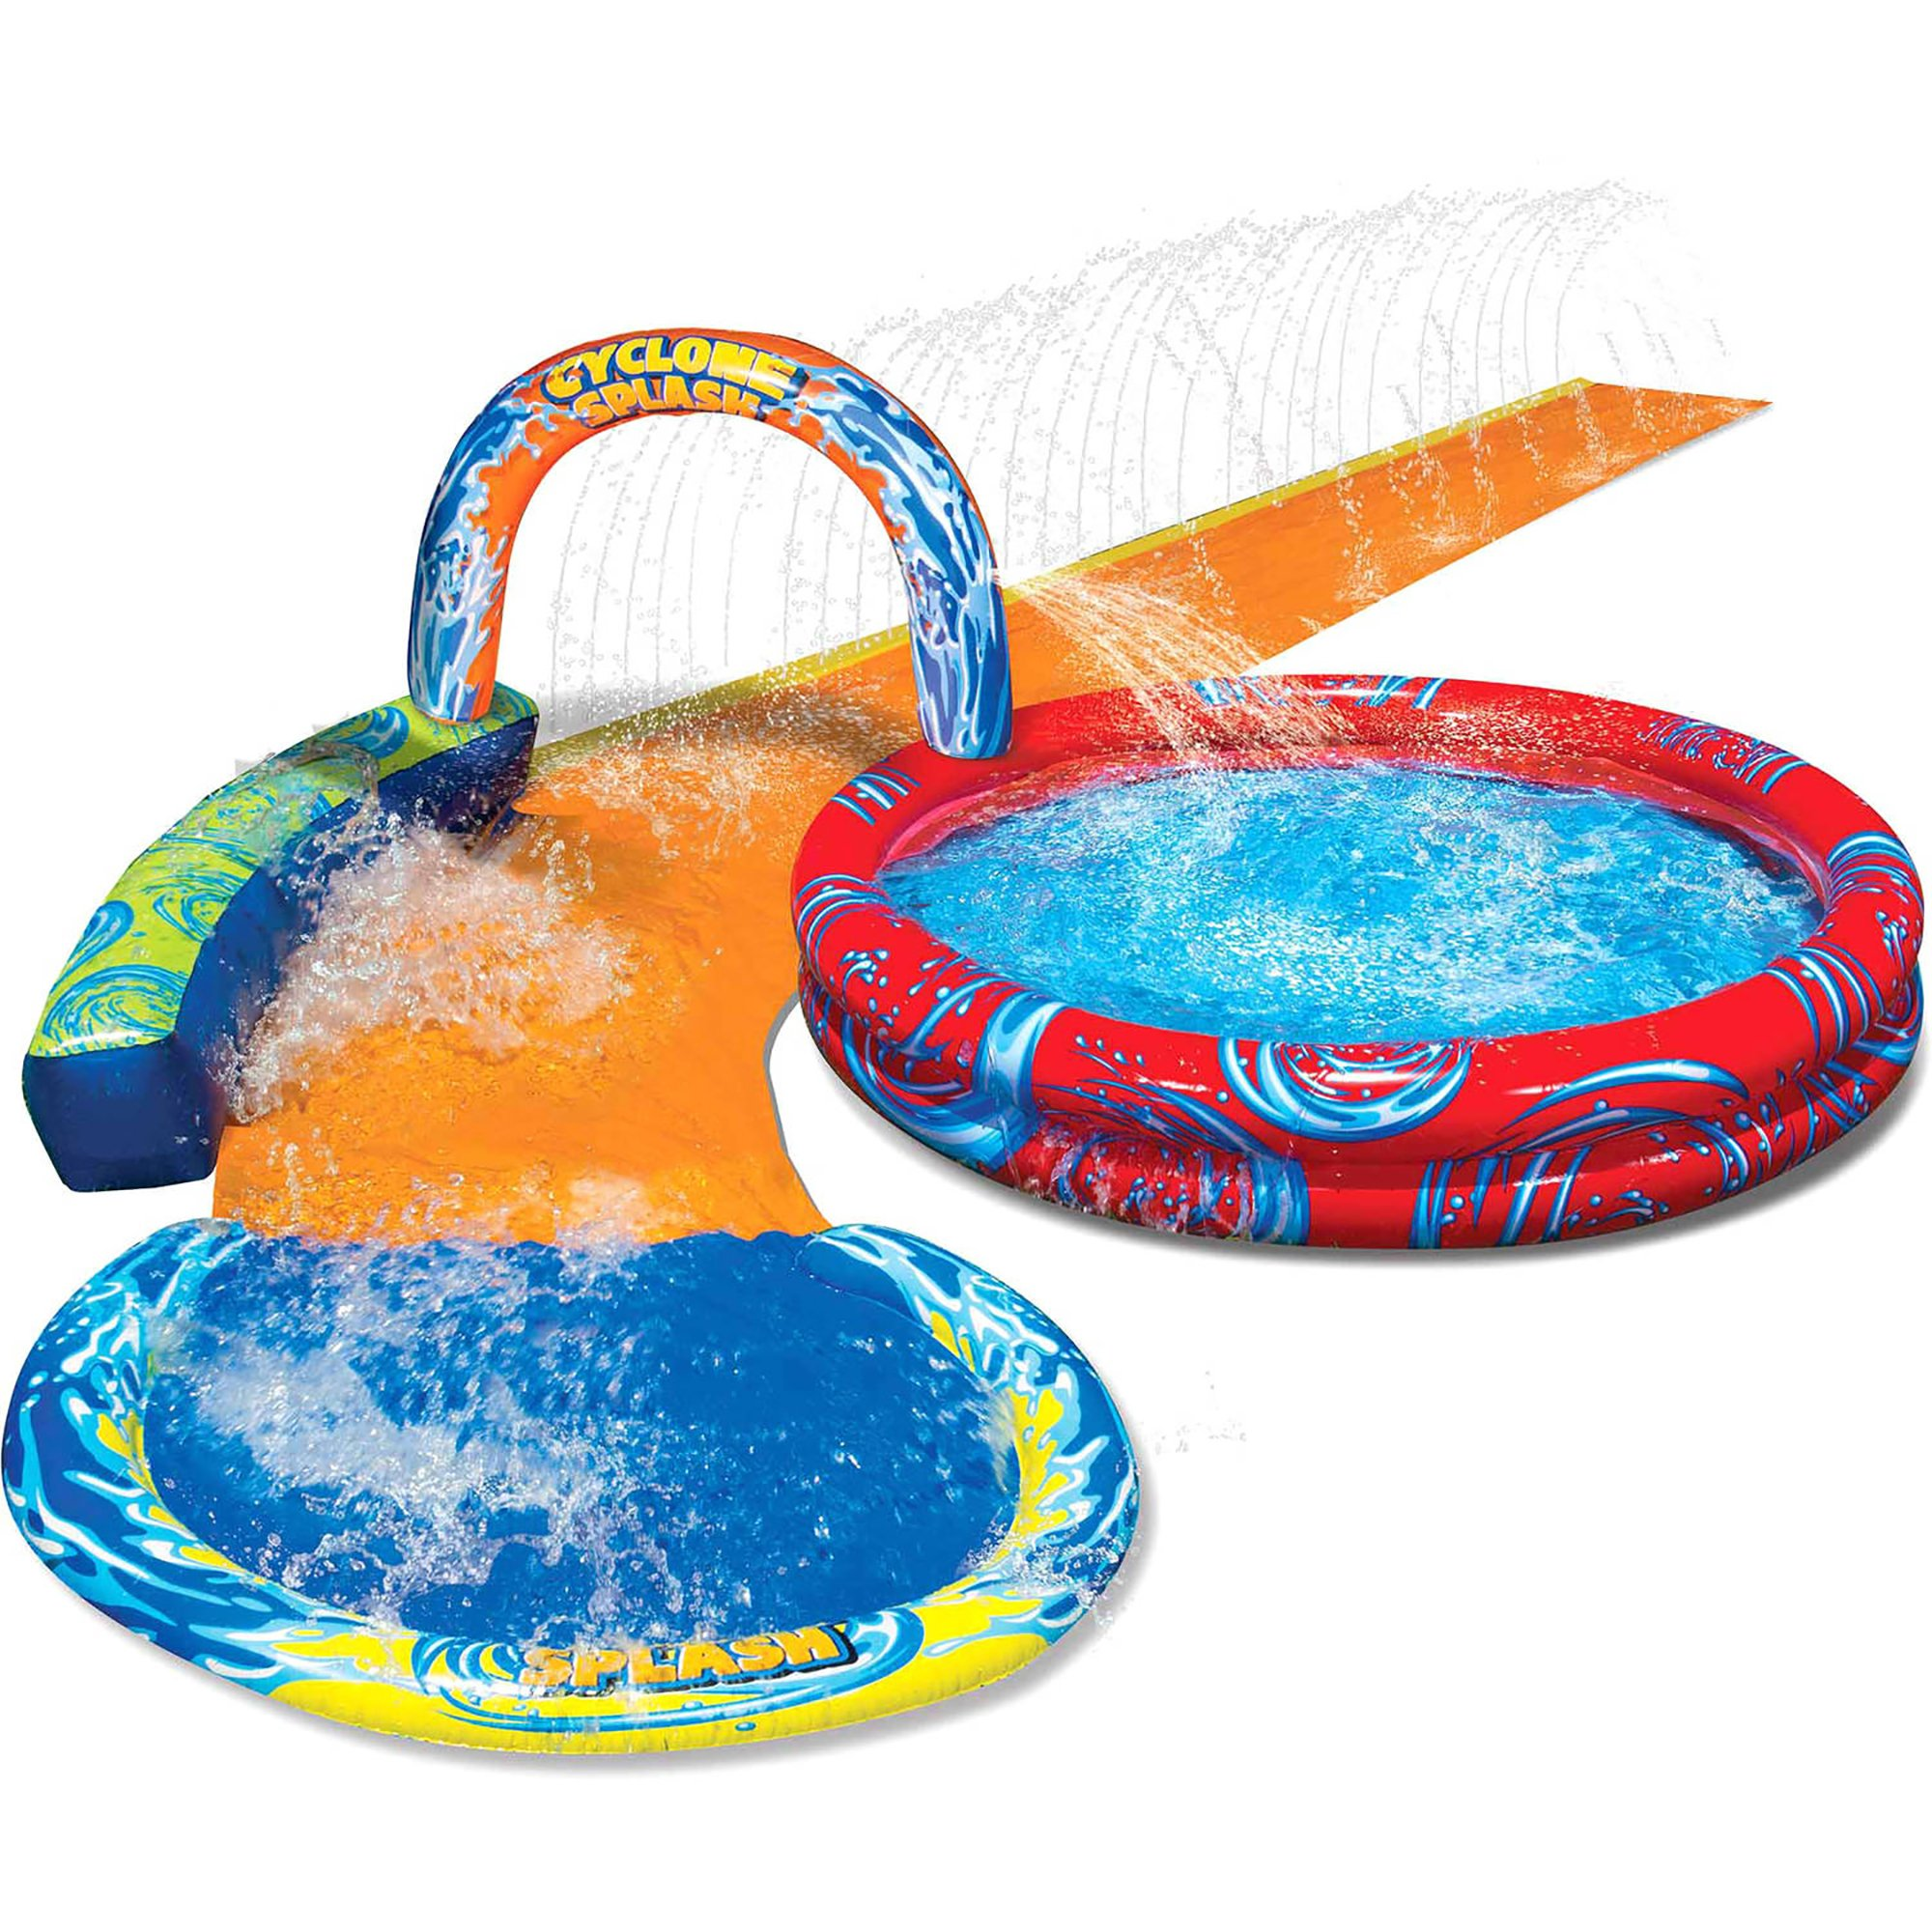 BANZAI Cyclone Splash Park Inflatable with Sprinkling Slide and Water Aqua Pool